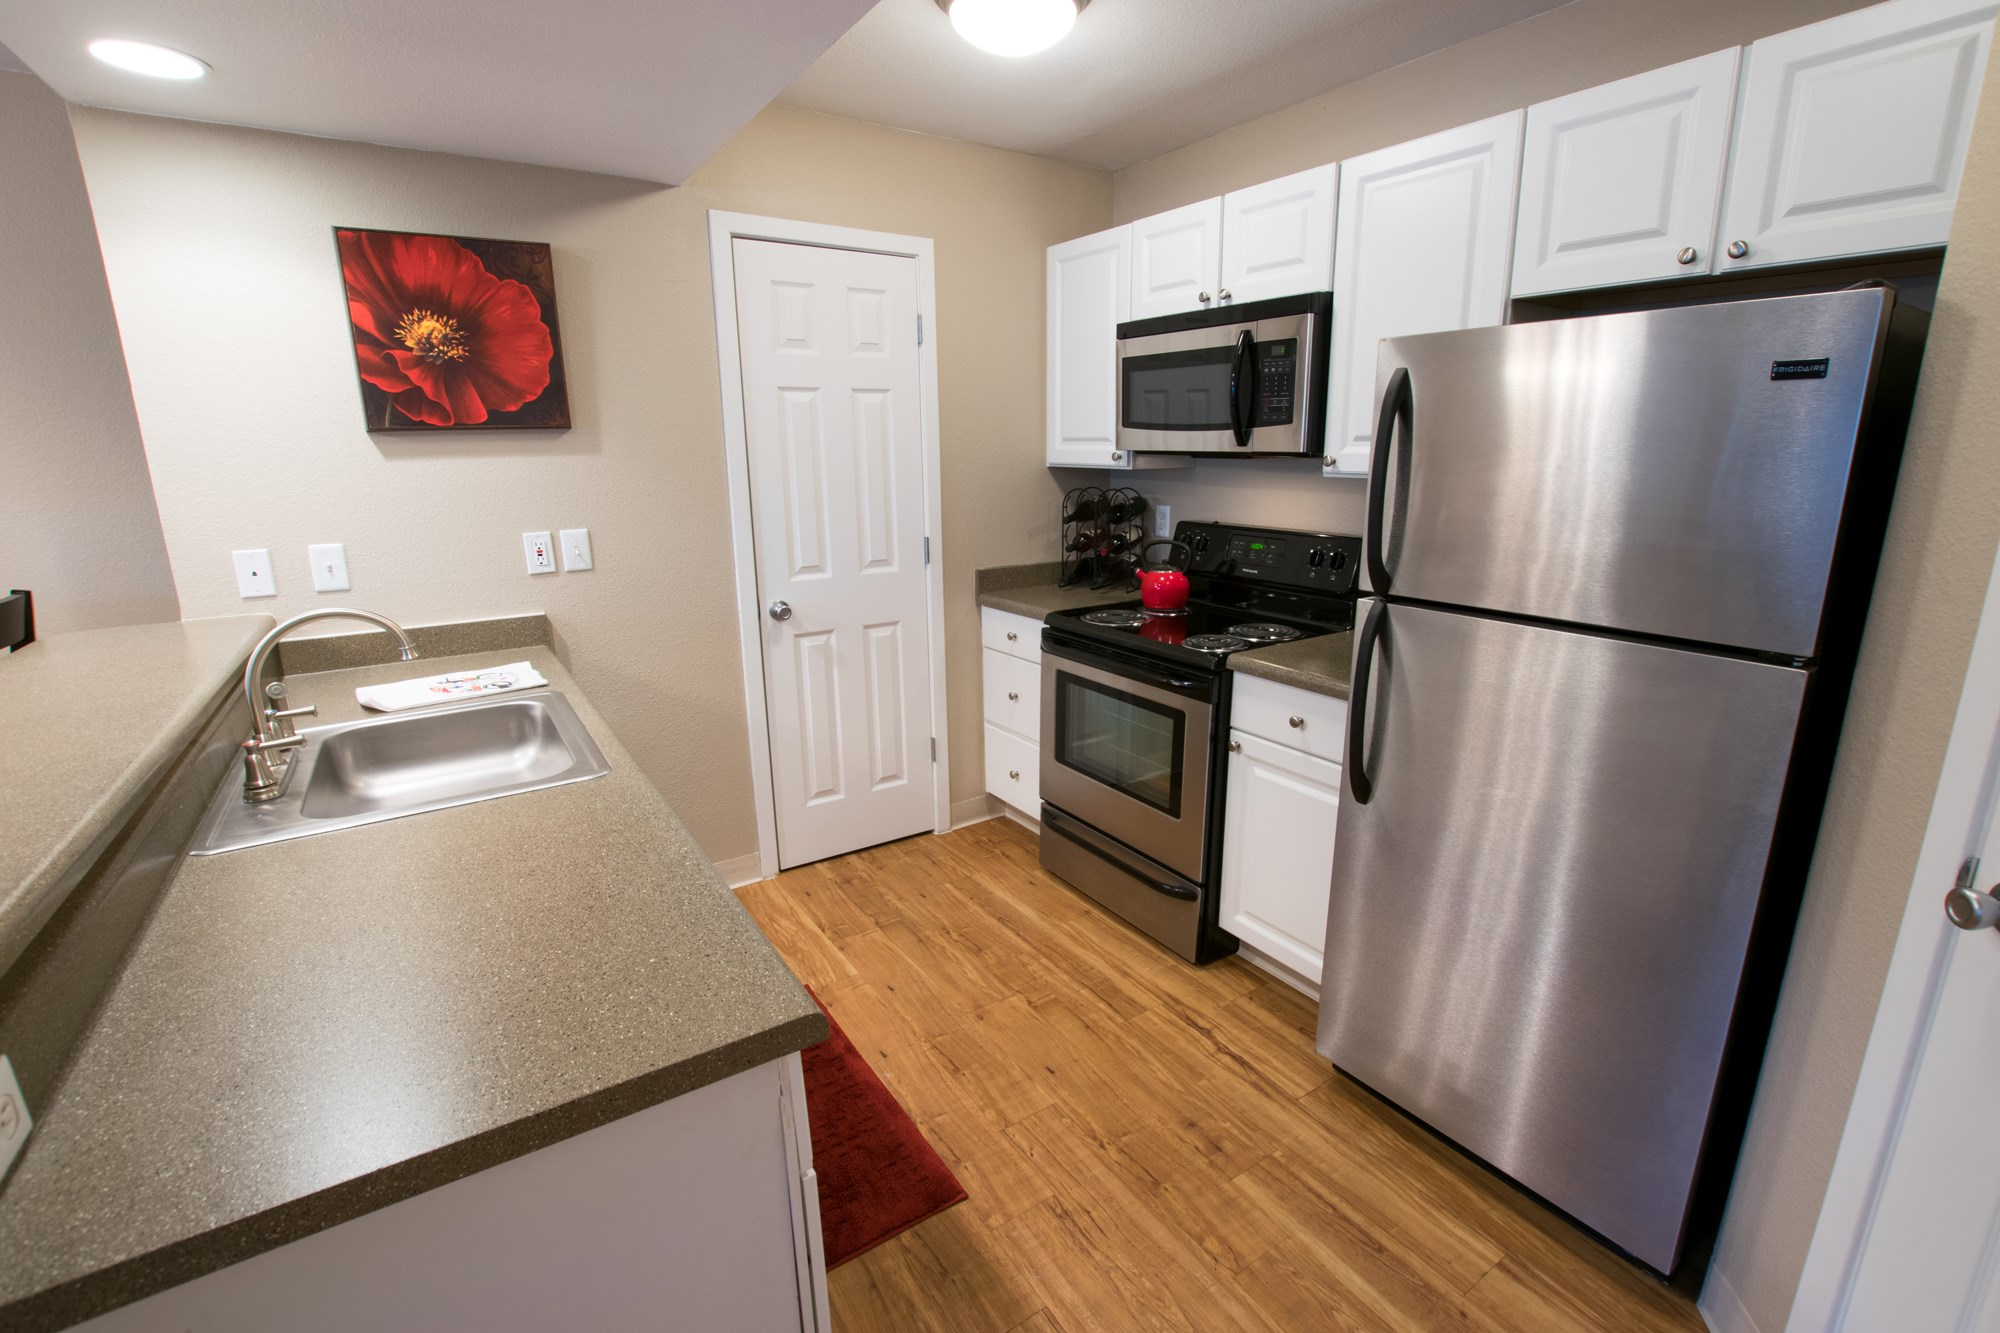 Kitchen at Miramont Apartments in Fort Collins, CO